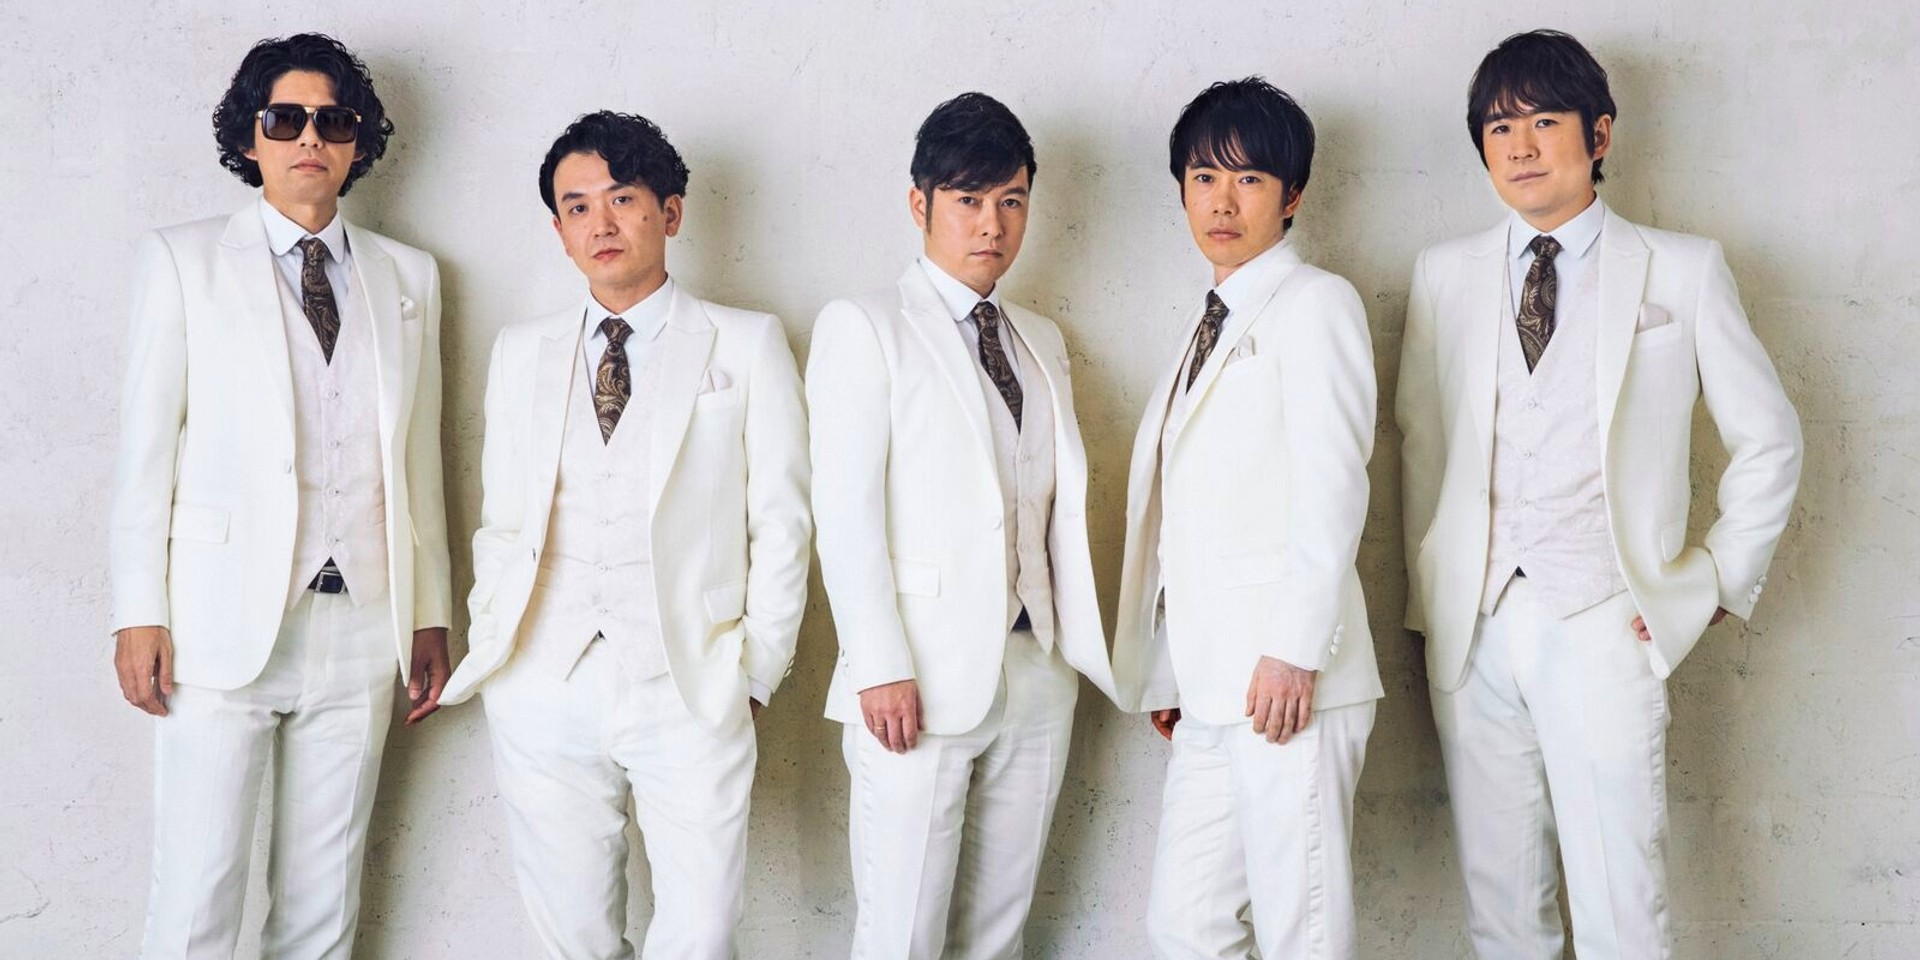 The Gospellers, Japan's premier R&B vocal group, started out as buskers